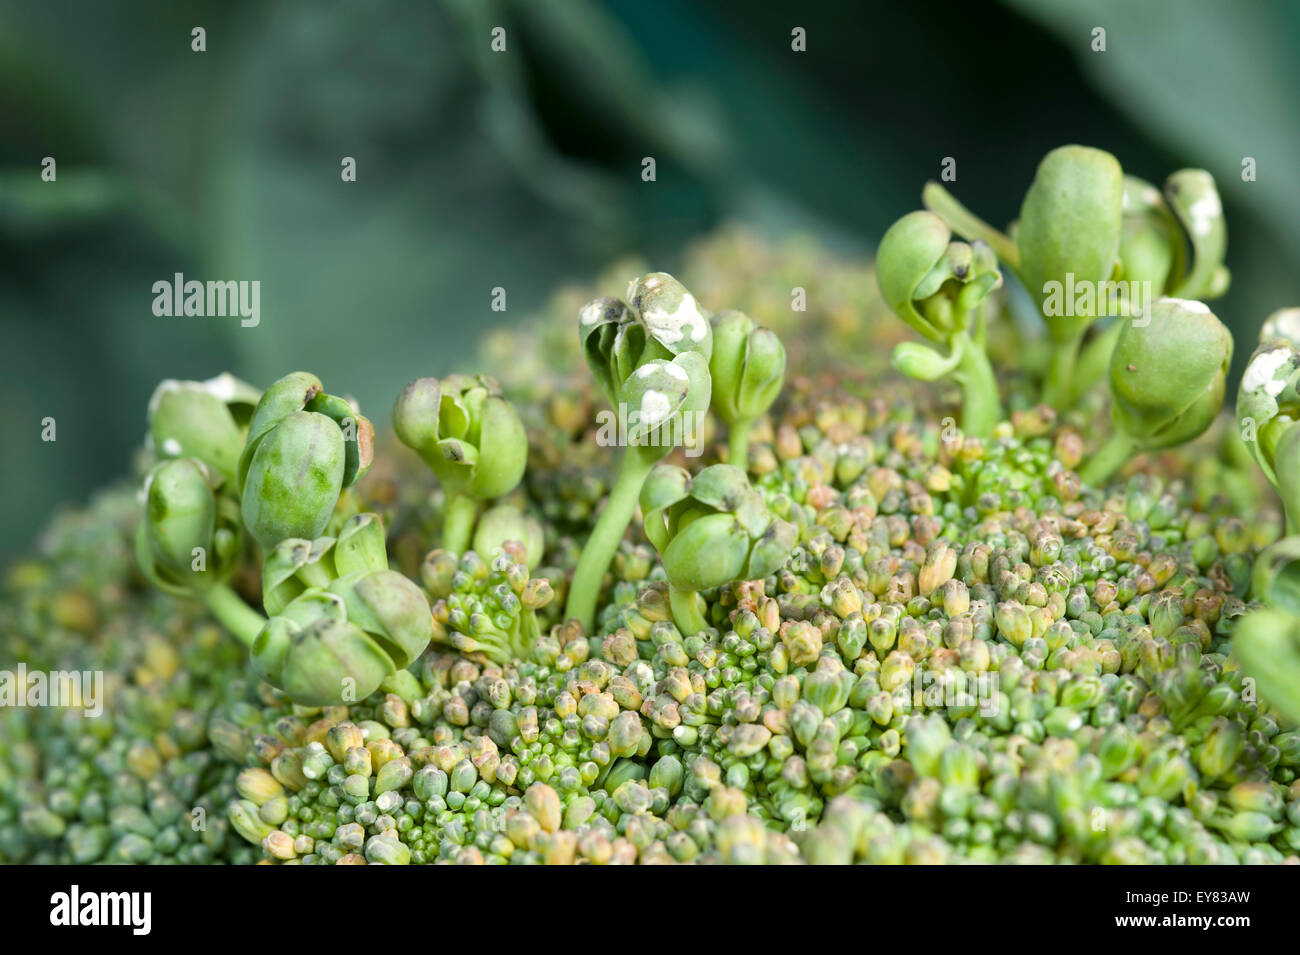 'Stags head' symptoms of white rust disease on broccoli - Stock Image